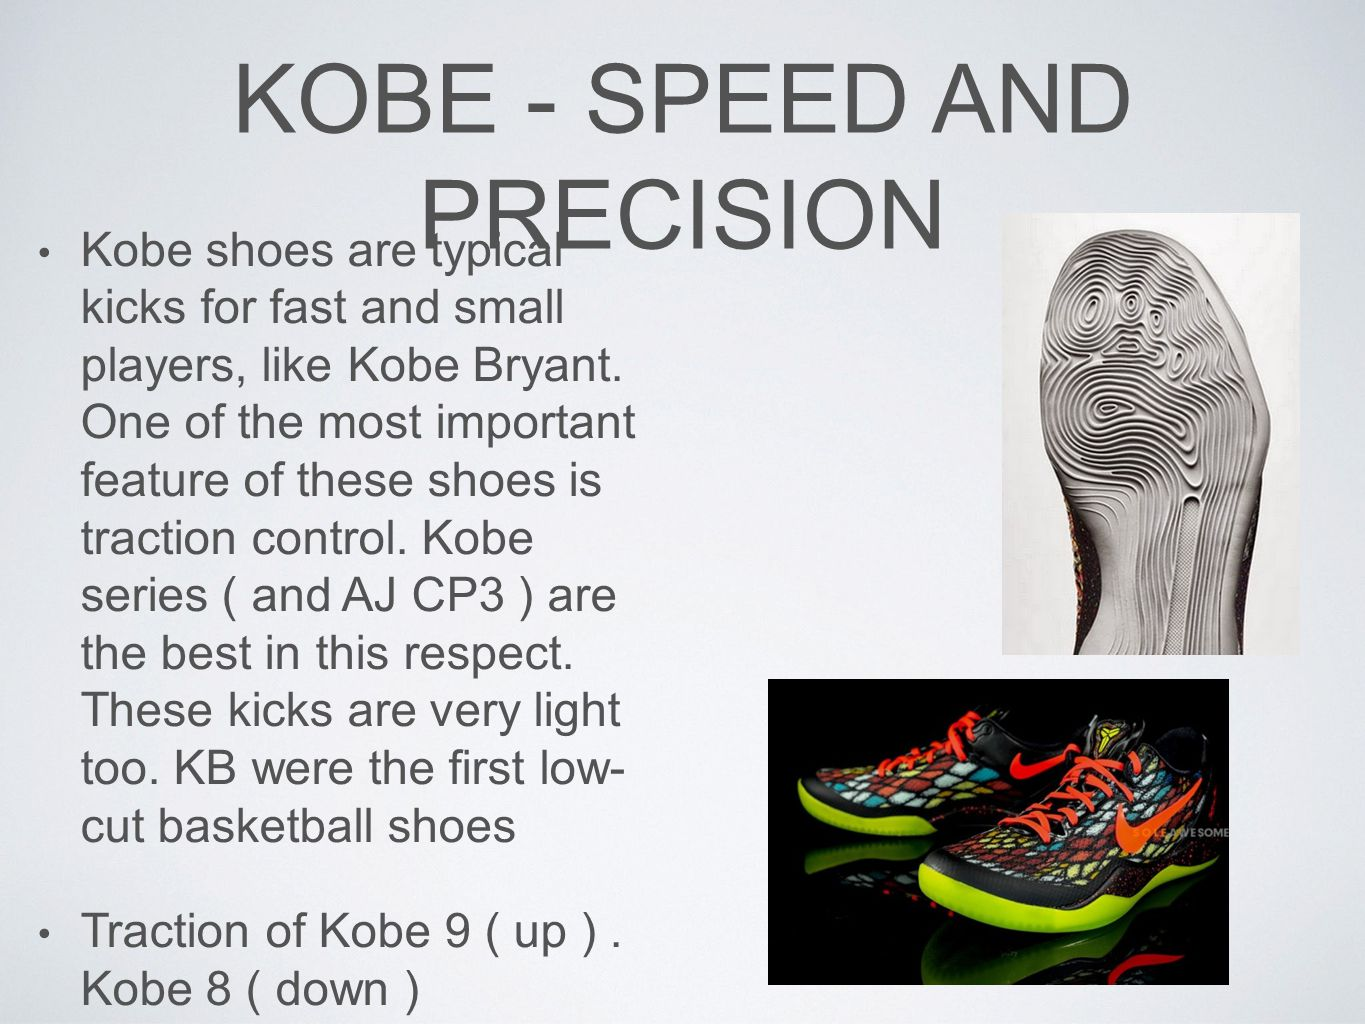 KOBE - SPEED AND PRECISION Kobe shoes are typical kicks for fast and small players, like Kobe Bryant.